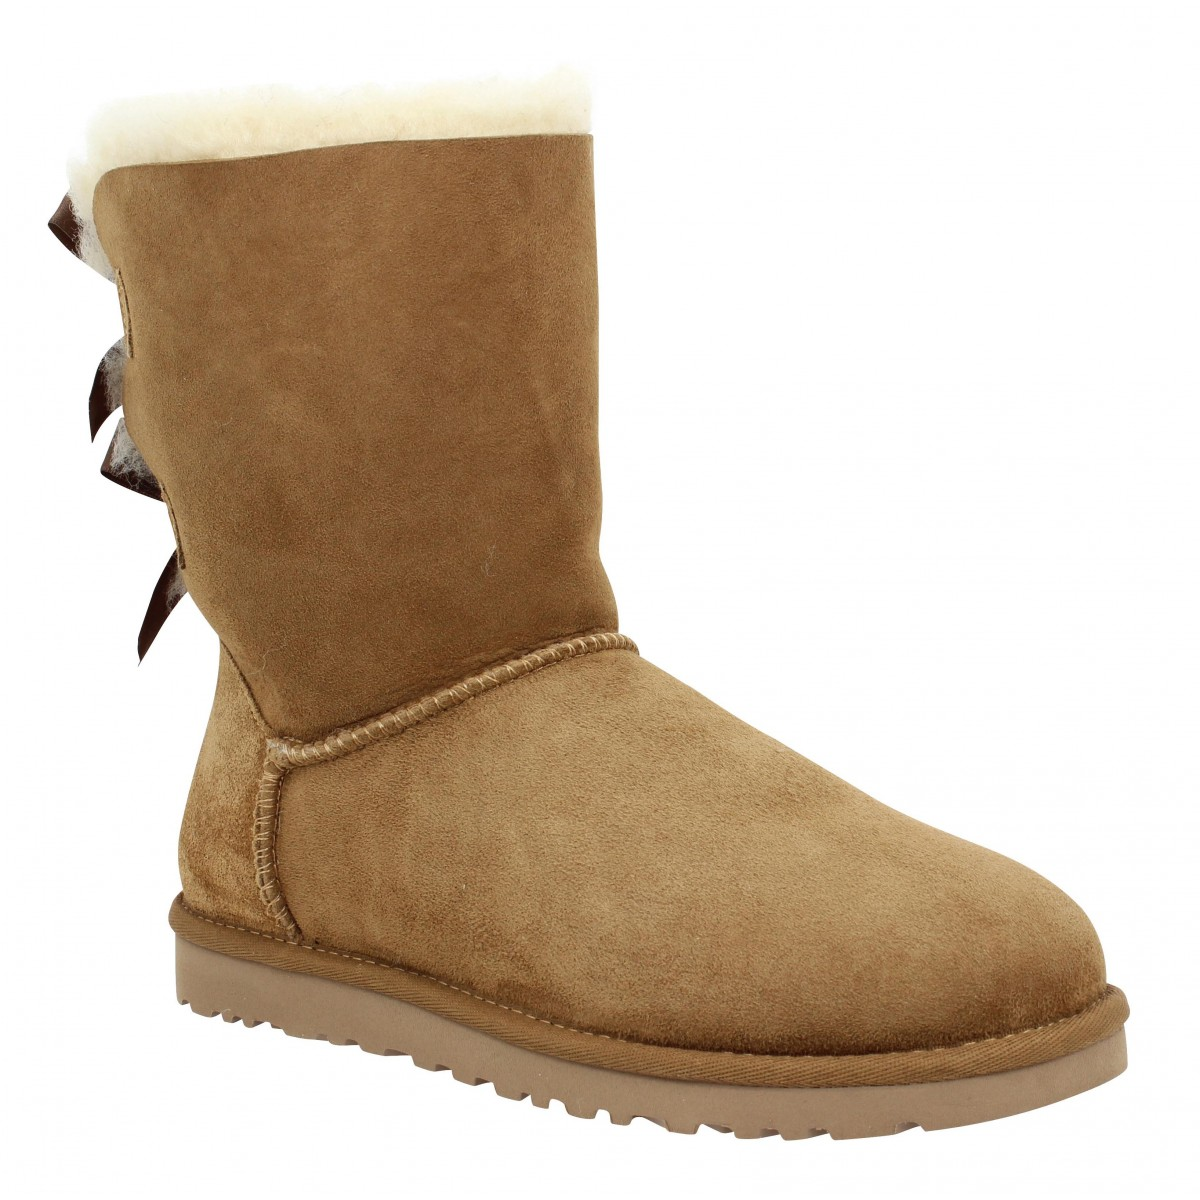 Bottes UGG AUSTRALIA Bailey Bow velours Femme Chestnut